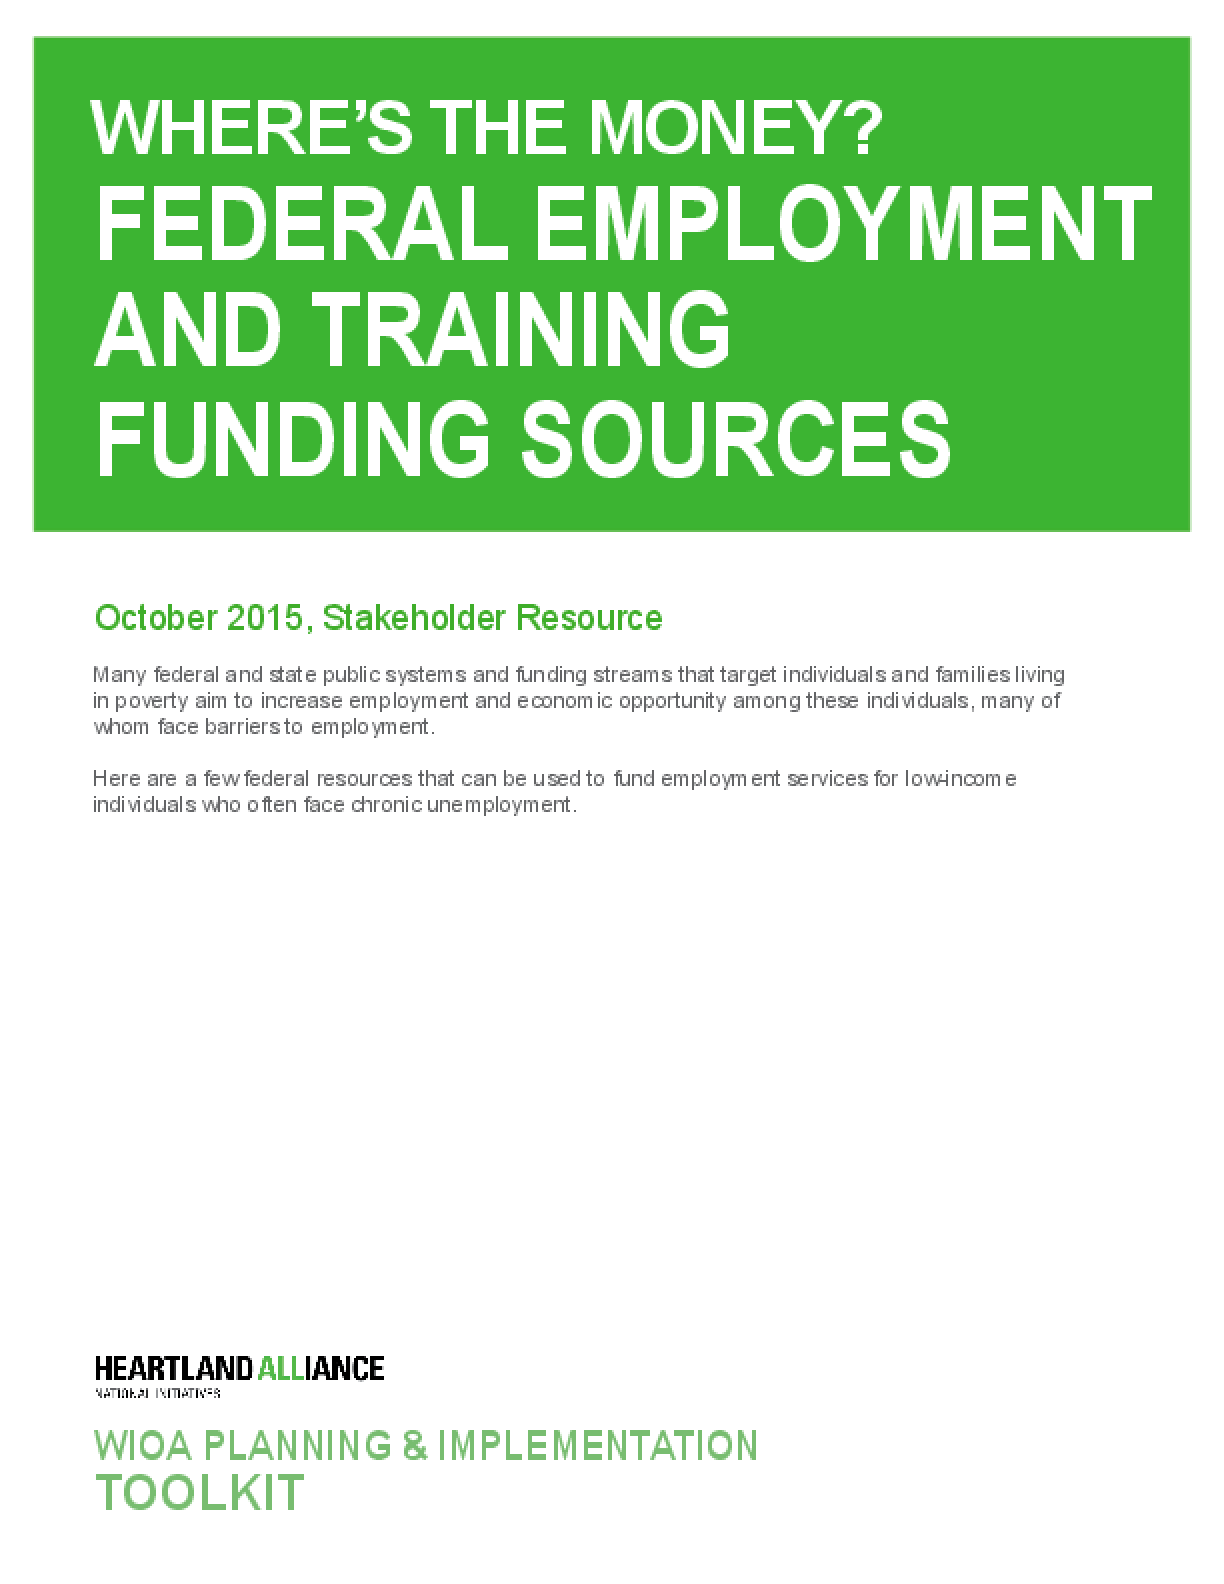 Where's the Money?: Federal Employment and Training Funding Sources